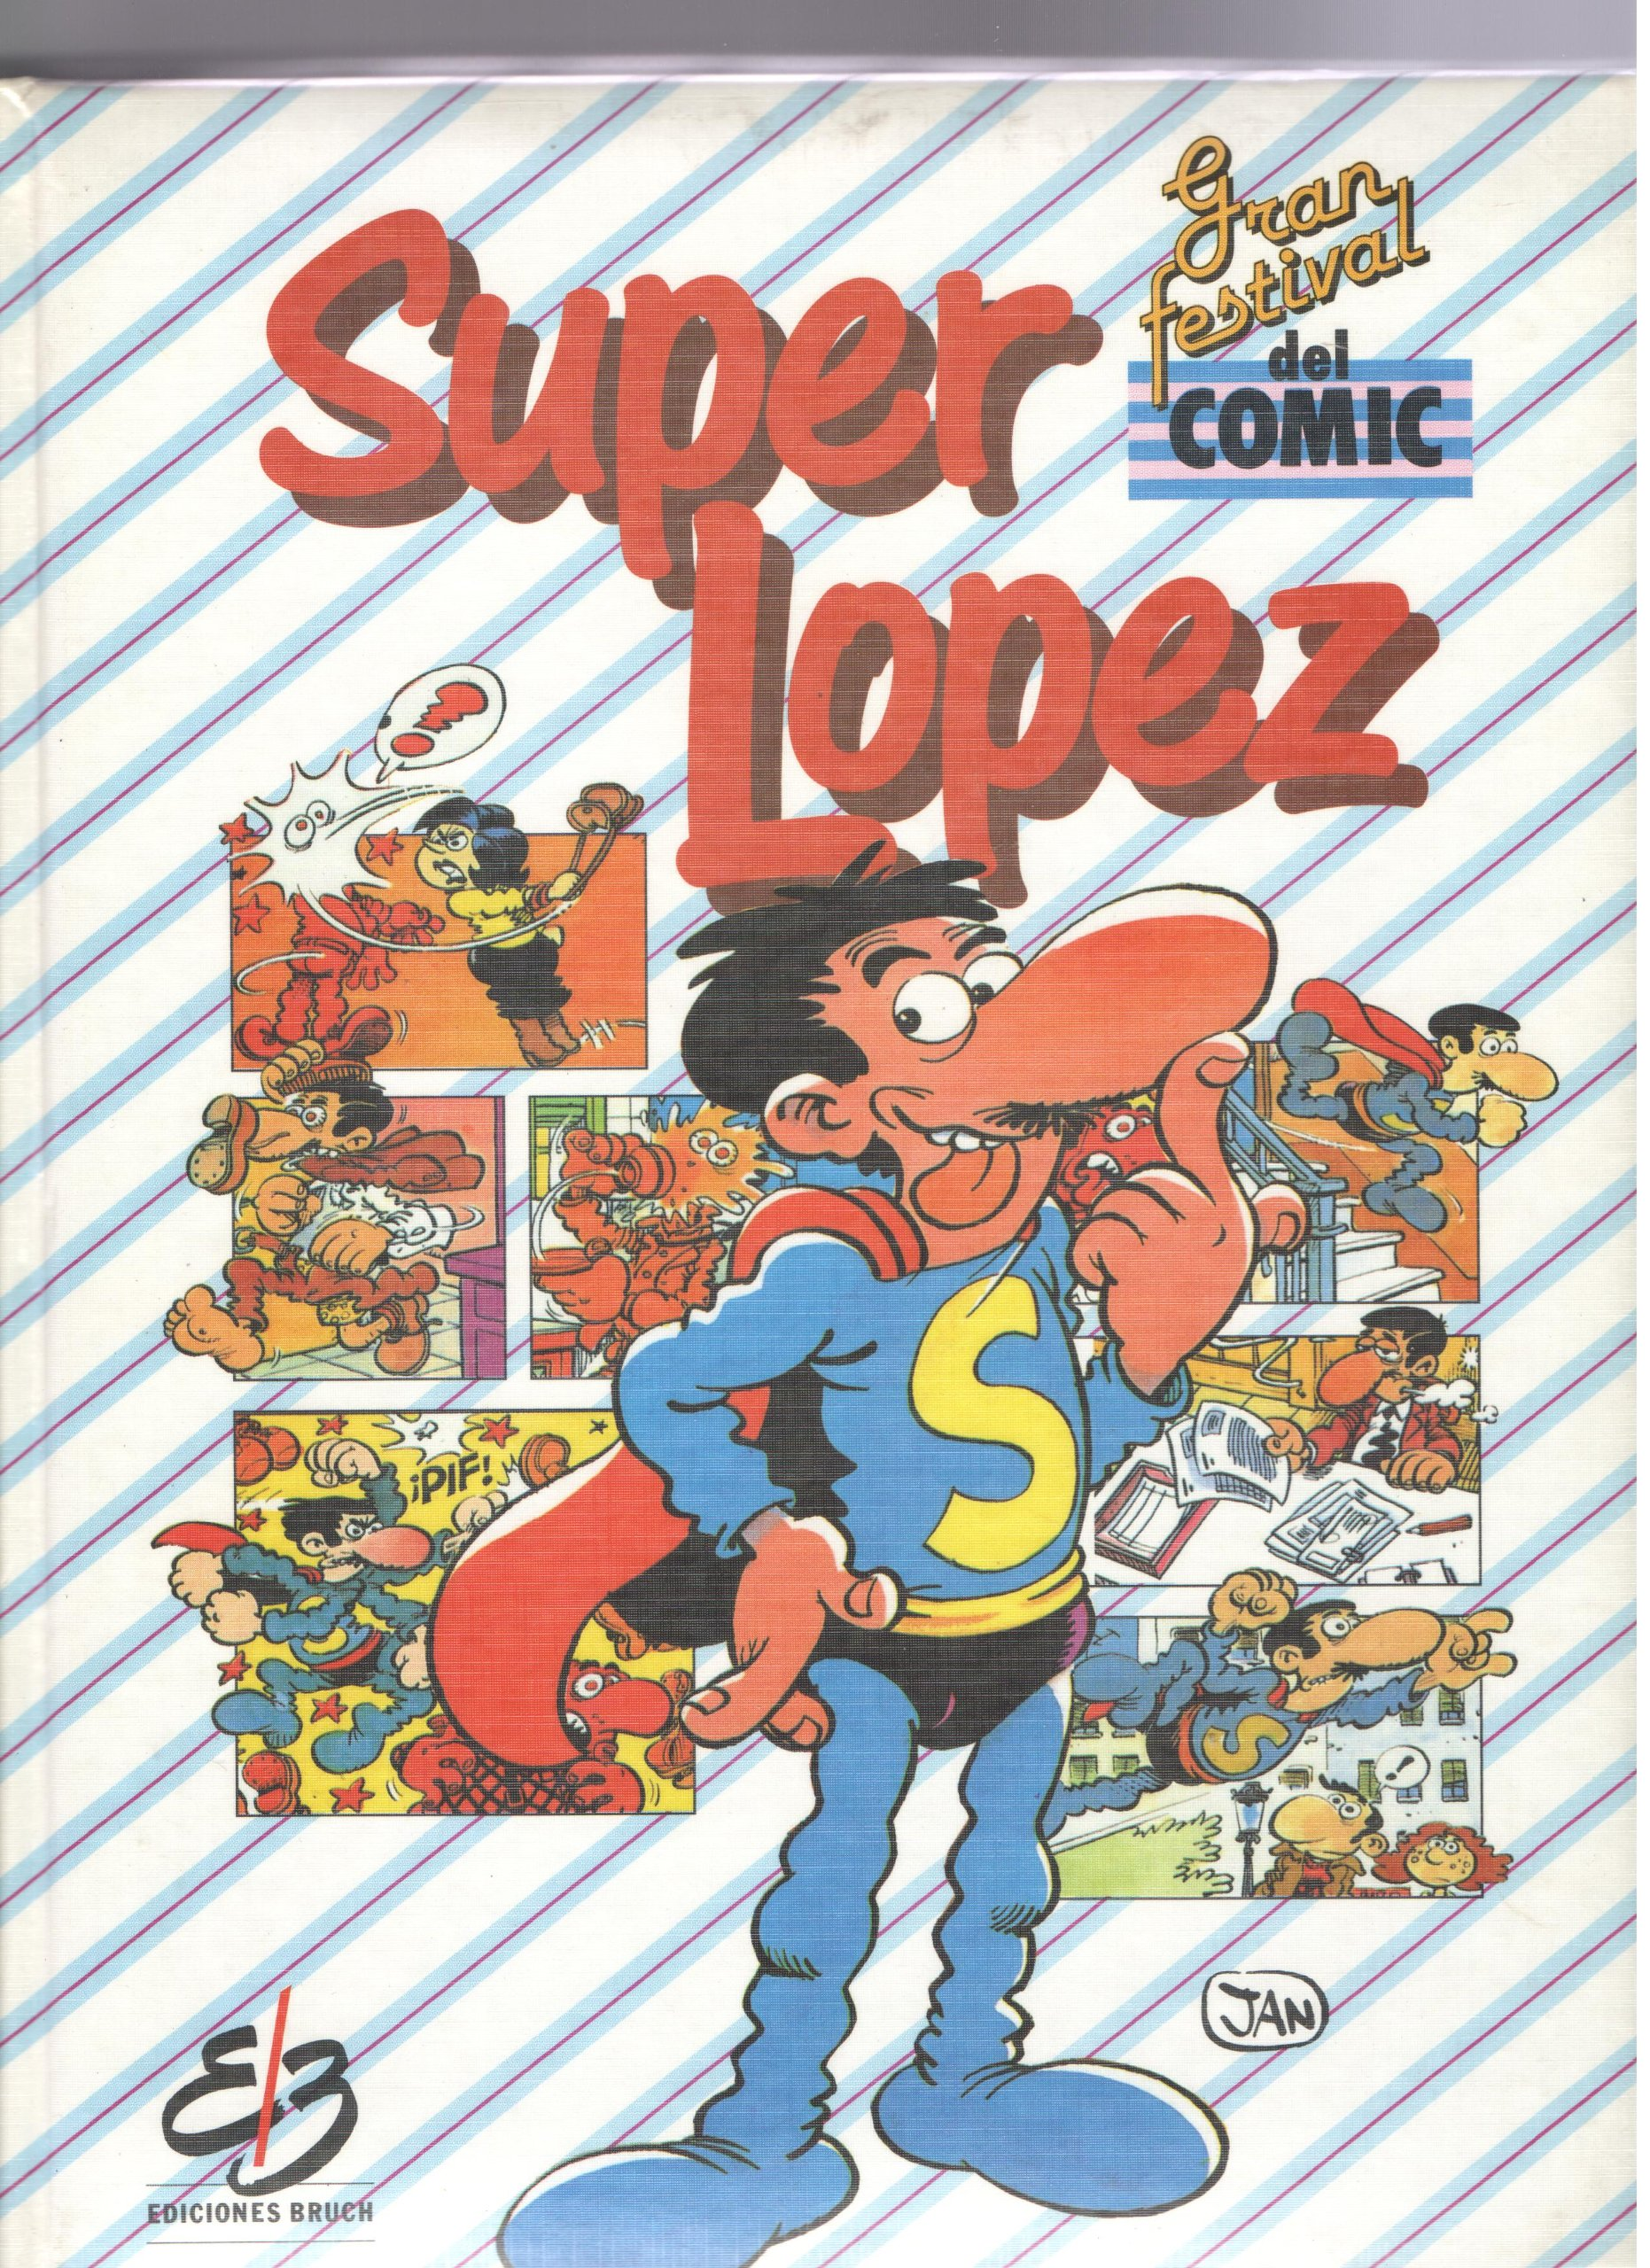 Super Lopez. Gran festival del comic. 3- tomos: Amazon.es ...